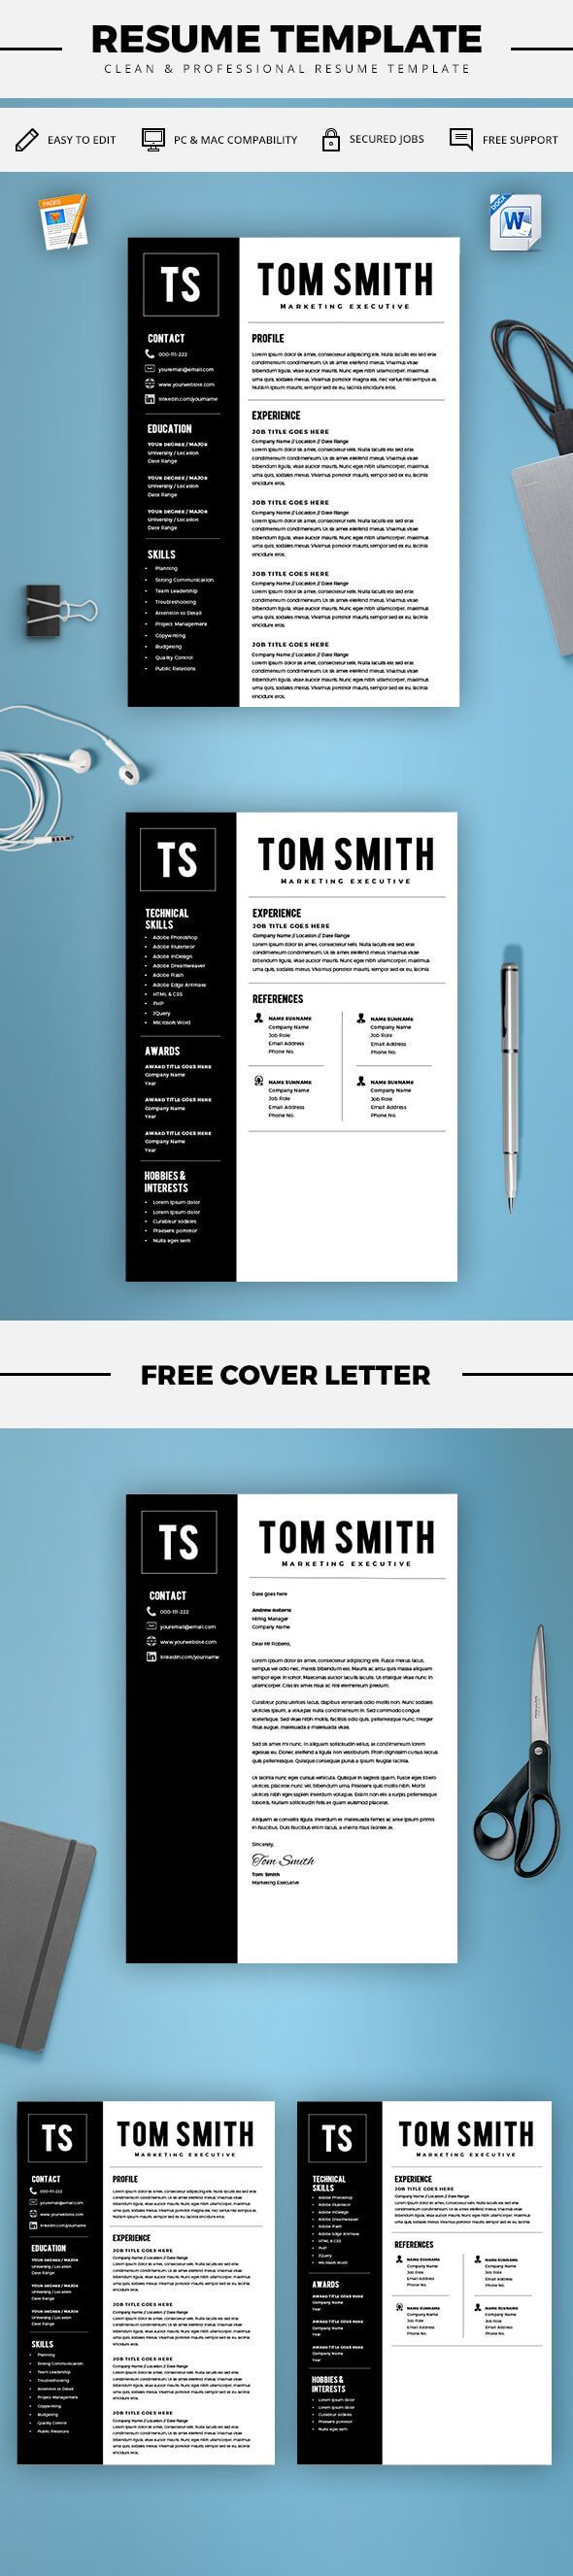 Best 25 Resume Maker Ideas On Pinterest Free Resume Maker